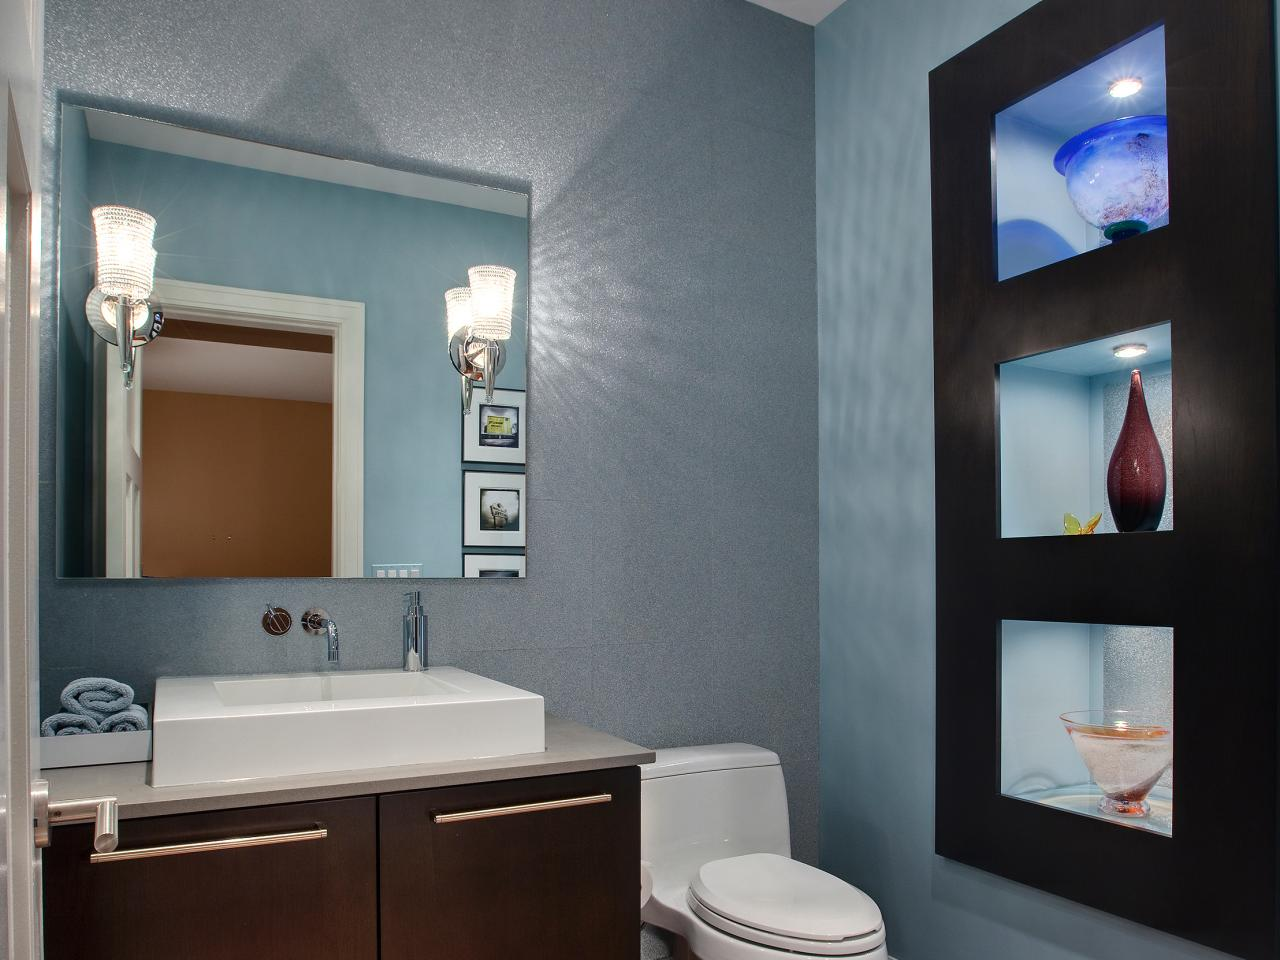 Half bathroom or powder room hgtv for Small half bathroom designs